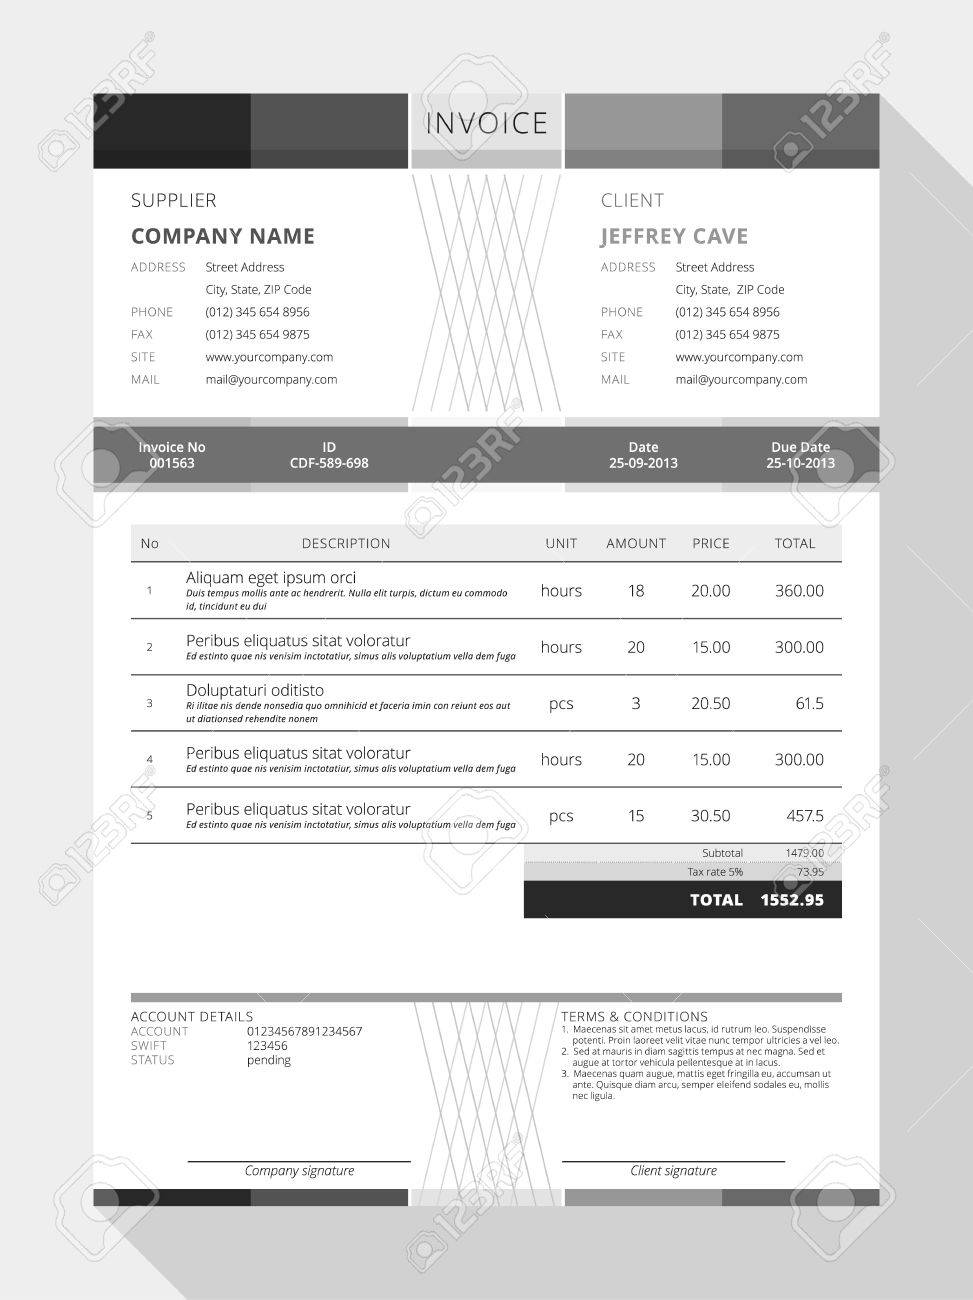 Usdgus  Stunning Design An Invoice  Professional Graphic Design Invoice  With Extraordinary Vector Customizable Invoice Form Template Design Vector   Design An Invoice With Lovely Send The Invoice Also How Can I Make An Invoice In Addition Invoice Google Docs And Apple Invoice As Well As Create Your Own Invoice Additionally How To Make An Invoice In Excel From Happytomco With Usdgus  Extraordinary Design An Invoice  Professional Graphic Design Invoice  With Lovely Vector Customizable Invoice Form Template Design Vector   Design An Invoice And Stunning Send The Invoice Also How Can I Make An Invoice In Addition Invoice Google Docs From Happytomco